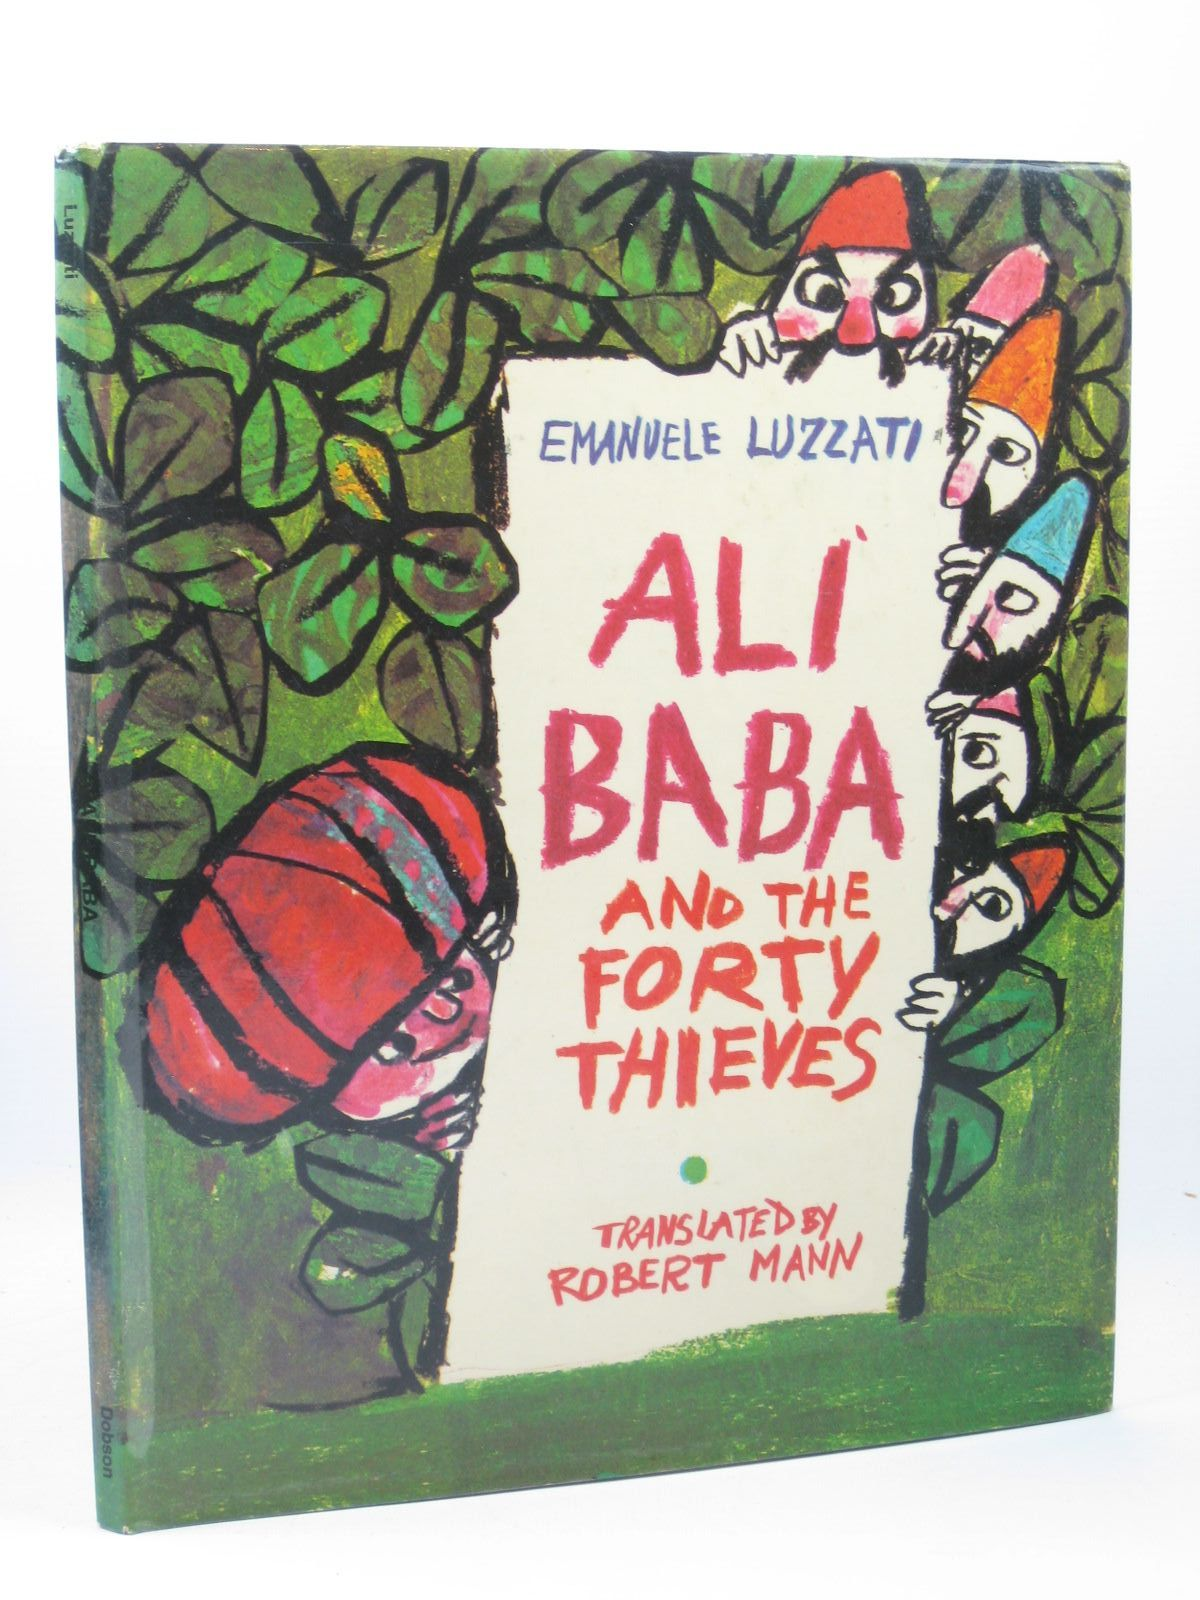 Photo of ALI BABA AND THE FORTY THIEVES written by Luzzati, Emanuele Mann, Robert illustrated by Luzzati, Emanuele published by Dobson Books Ltd. (STOCK CODE: 1312292)  for sale by Stella & Rose's Books